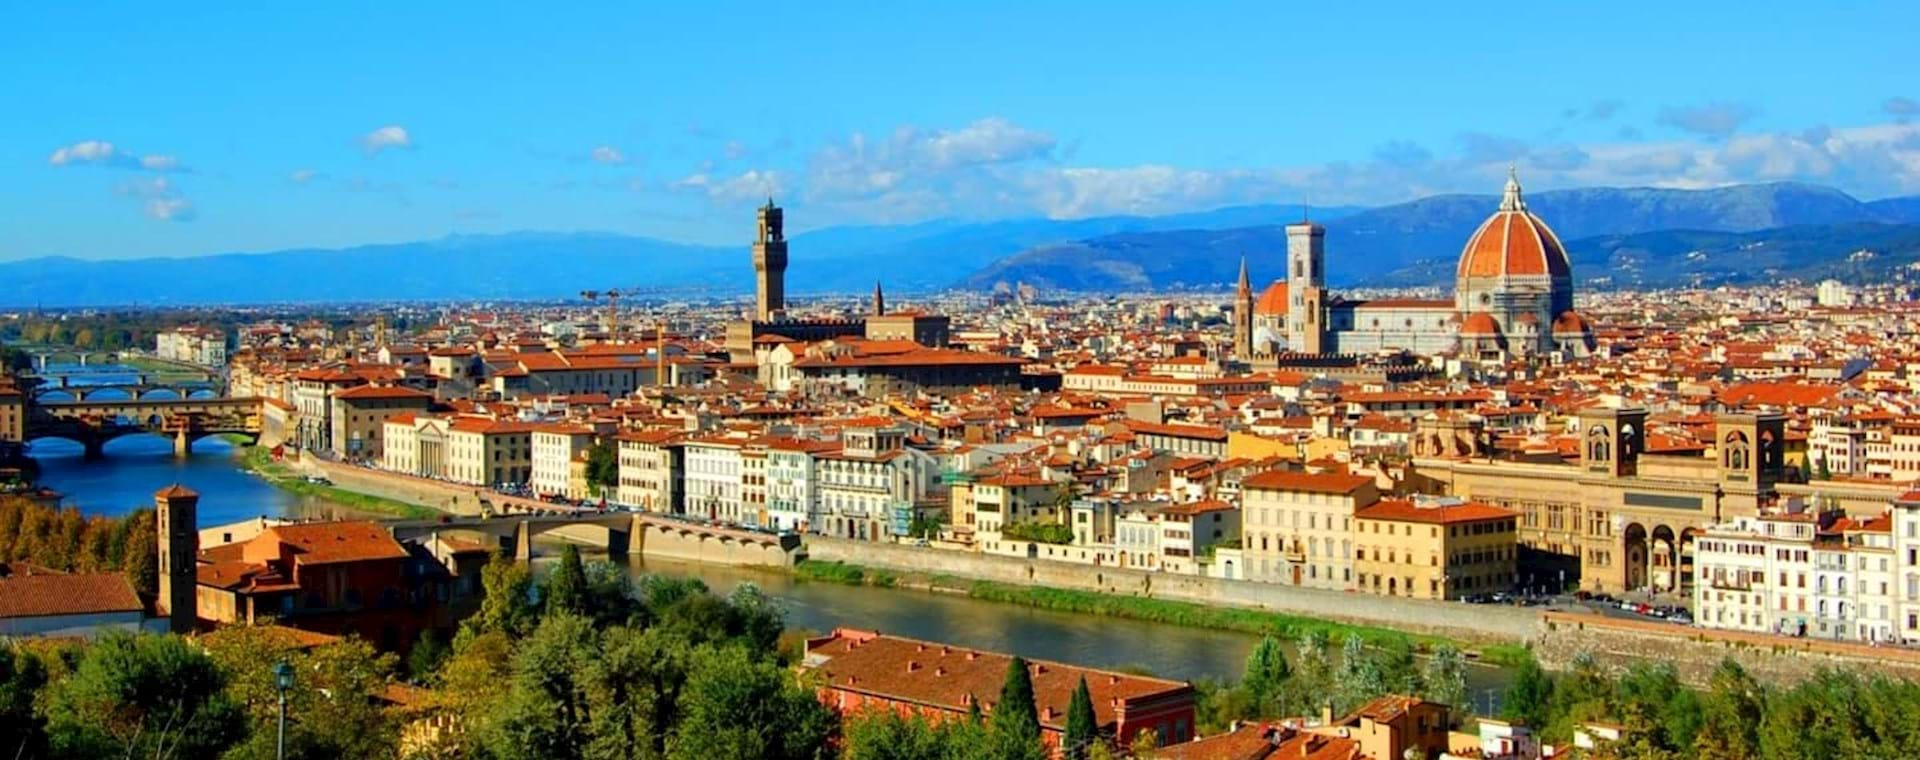 Best of Florence from Rome by High-Speed Train with Michelangelo's David